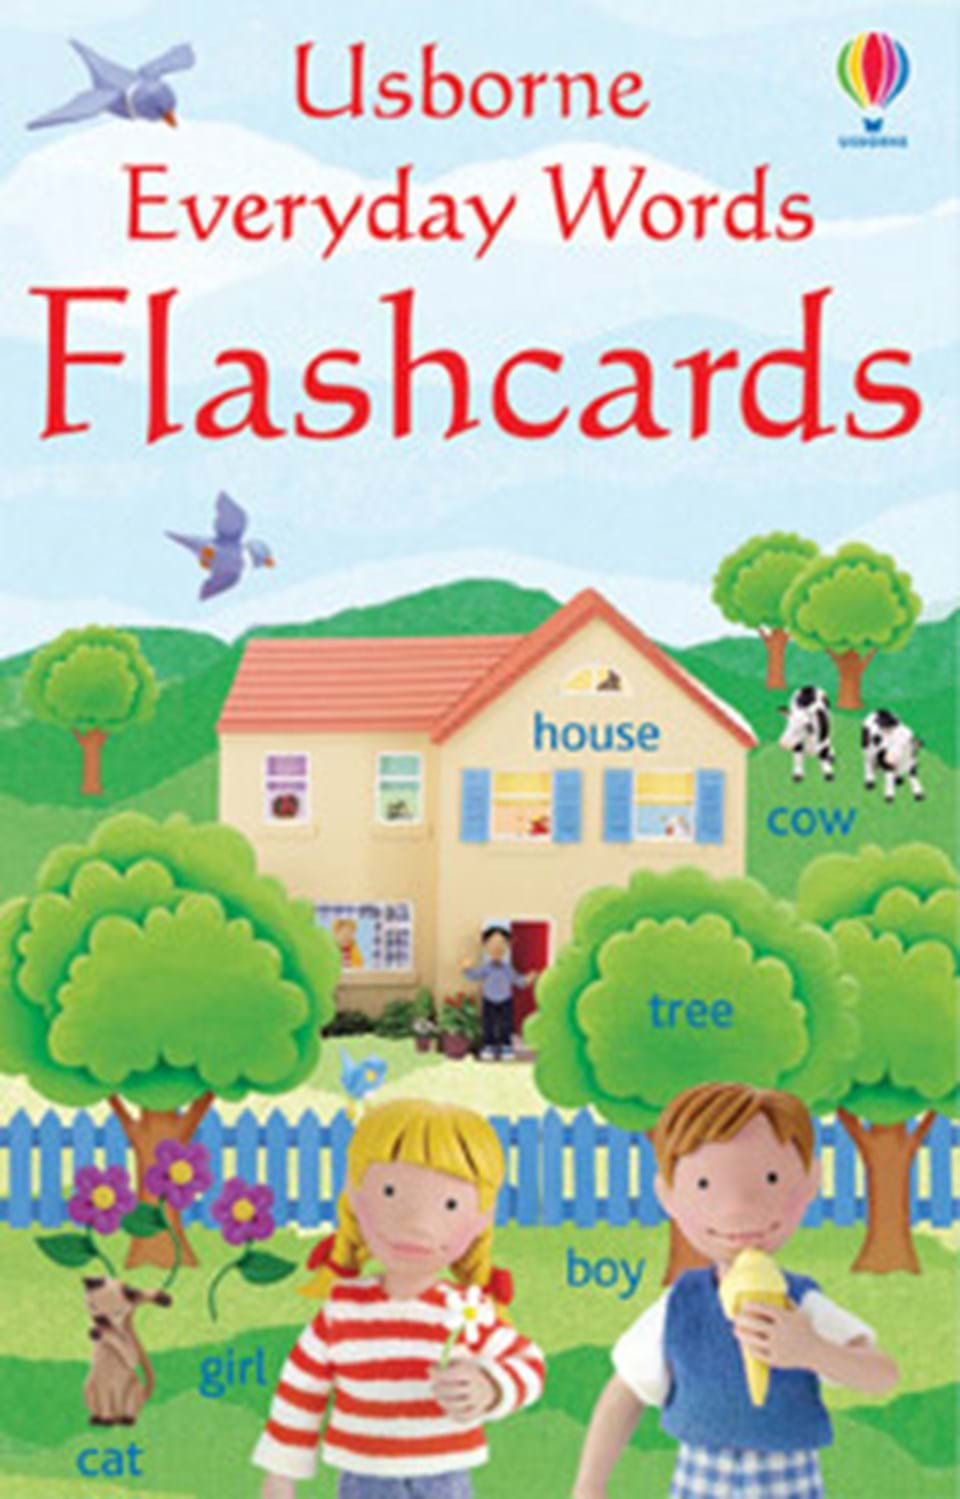 """Everyday Words flashcards"""" at Usborne Books at Home"""